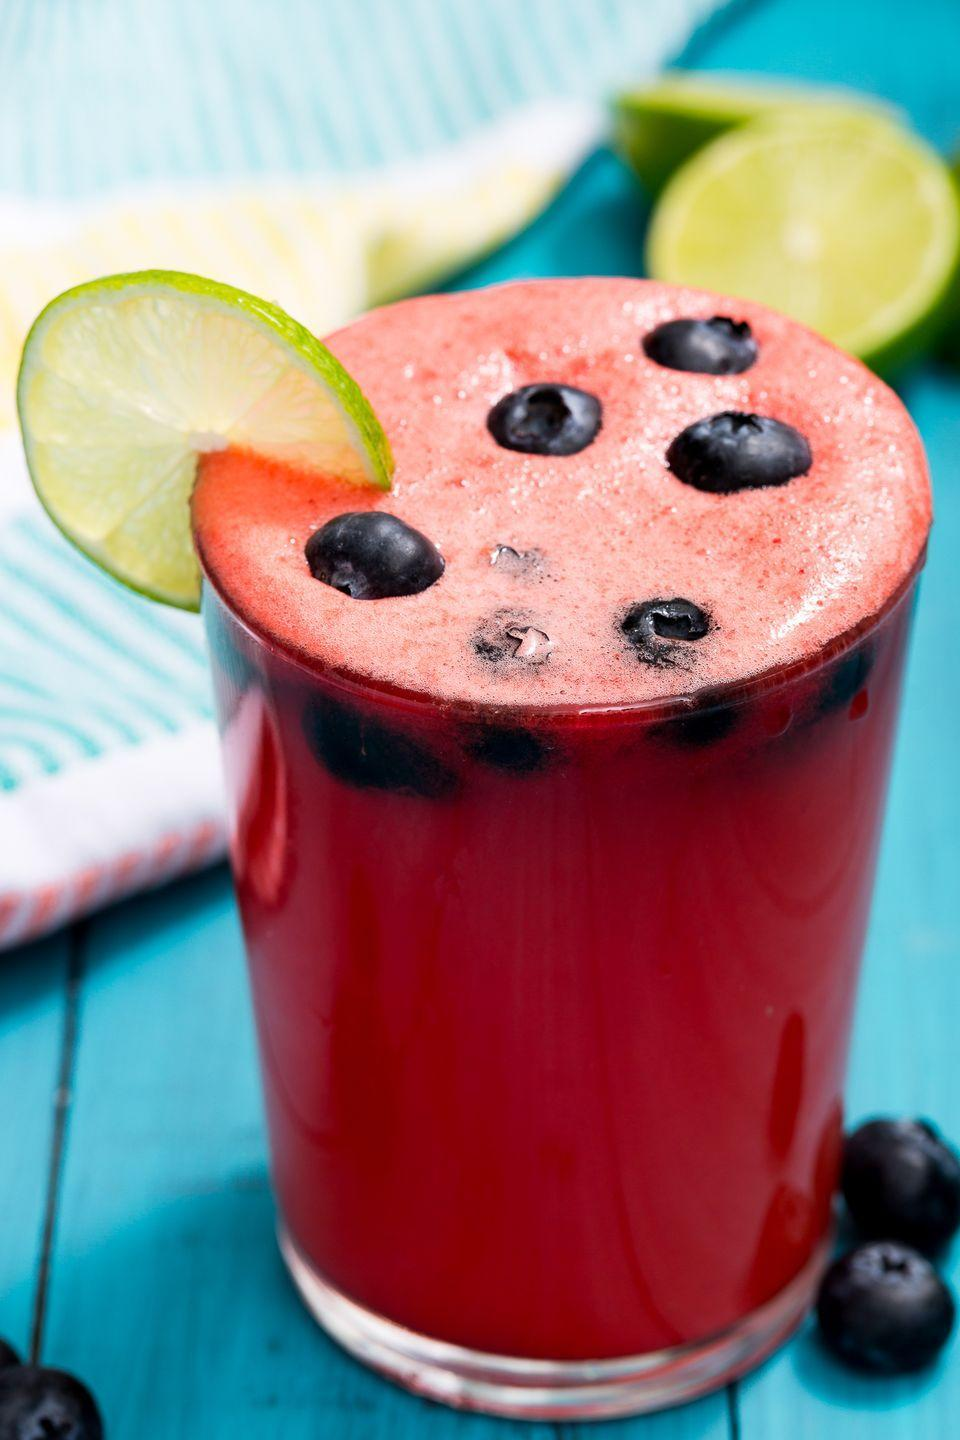 """<p>This refreshing cocktail is like a slice of watermelon in a glass.</p><p>Get the recipe from <a href=""""https://www.delish.com/cooking/recipe-ideas/recipes/a47213/watermelon-sangria-recipe/"""" rel=""""nofollow noopener"""" target=""""_blank"""" data-ylk=""""slk:Delish"""" class=""""link rapid-noclick-resp"""">Delish</a>.</p>"""